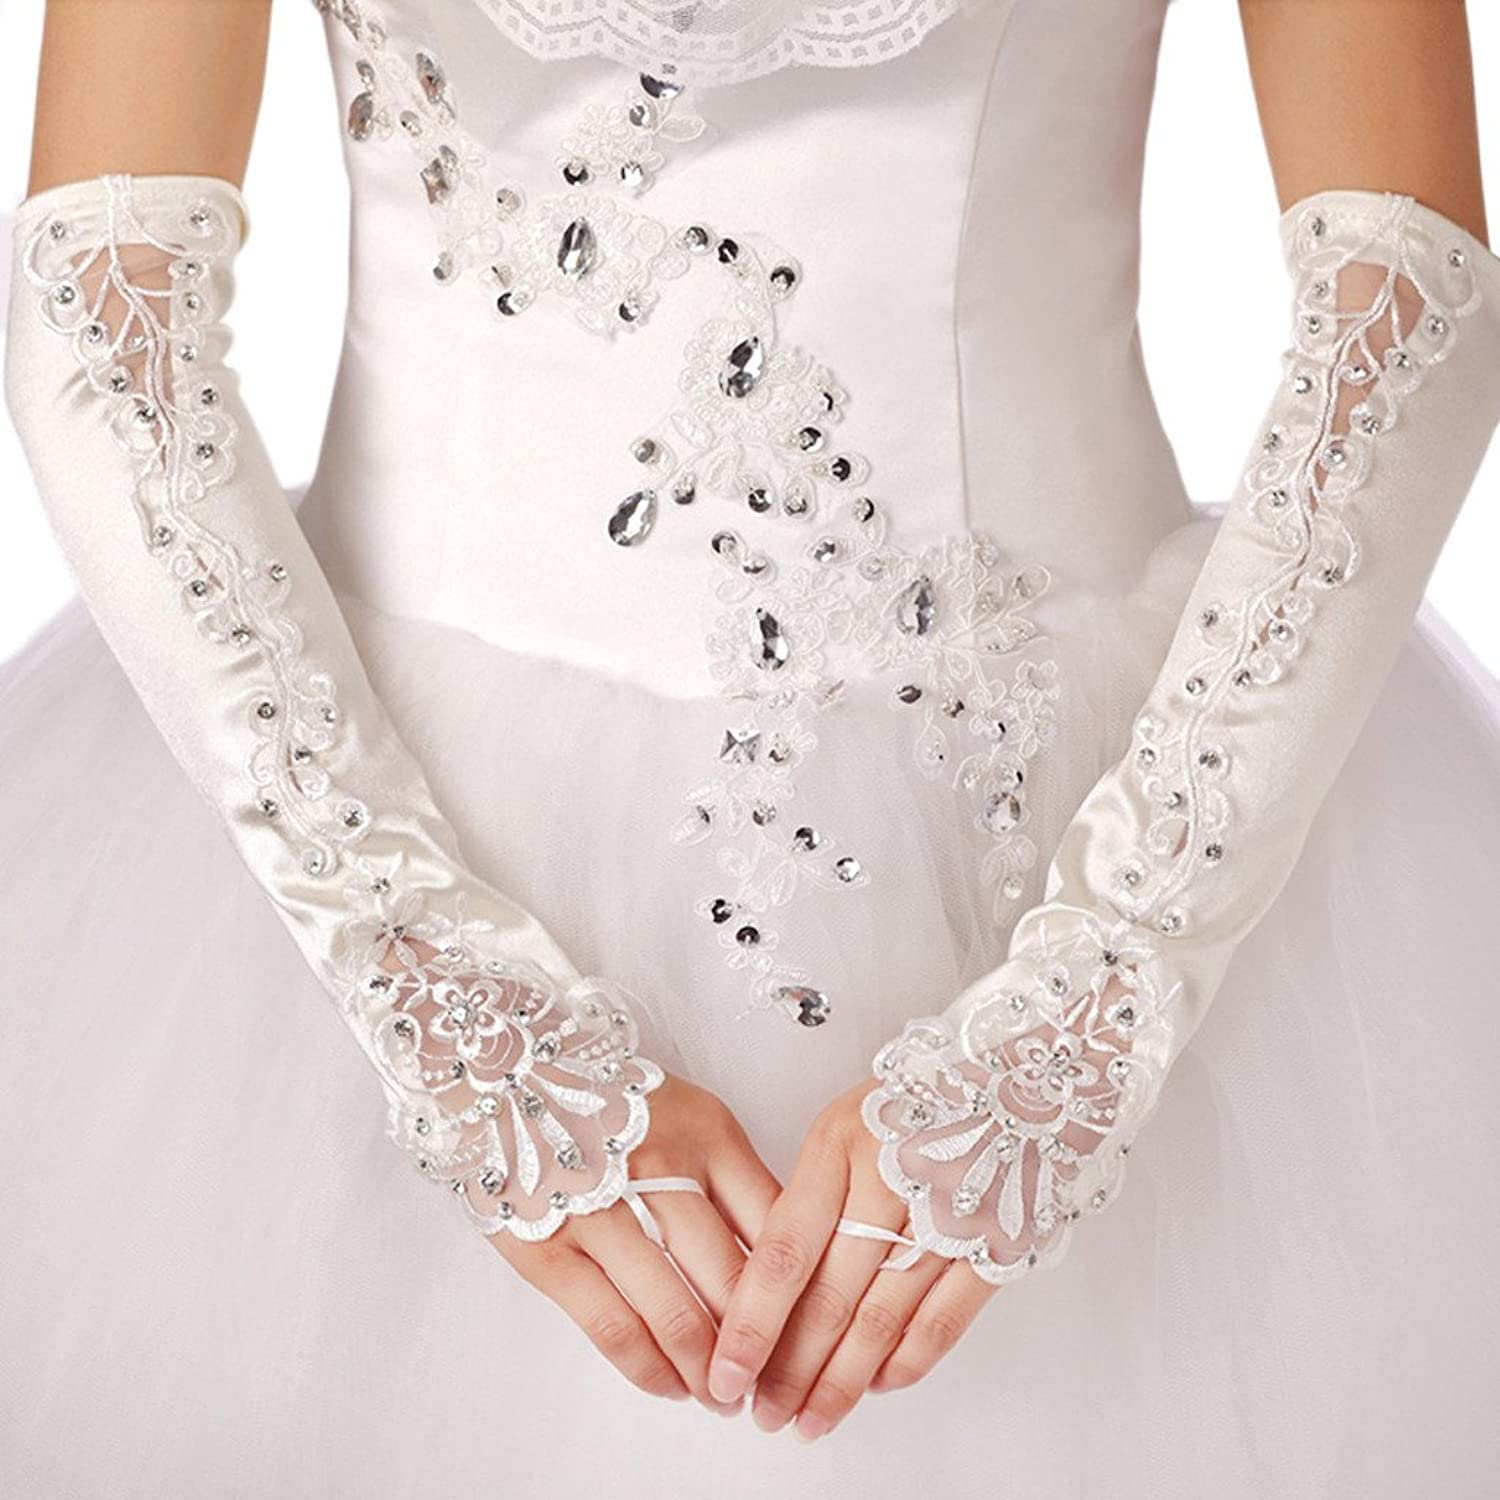 Vimans Women's 2016 White Fingerless Lace Bridal Gloves for Wedding with Beads